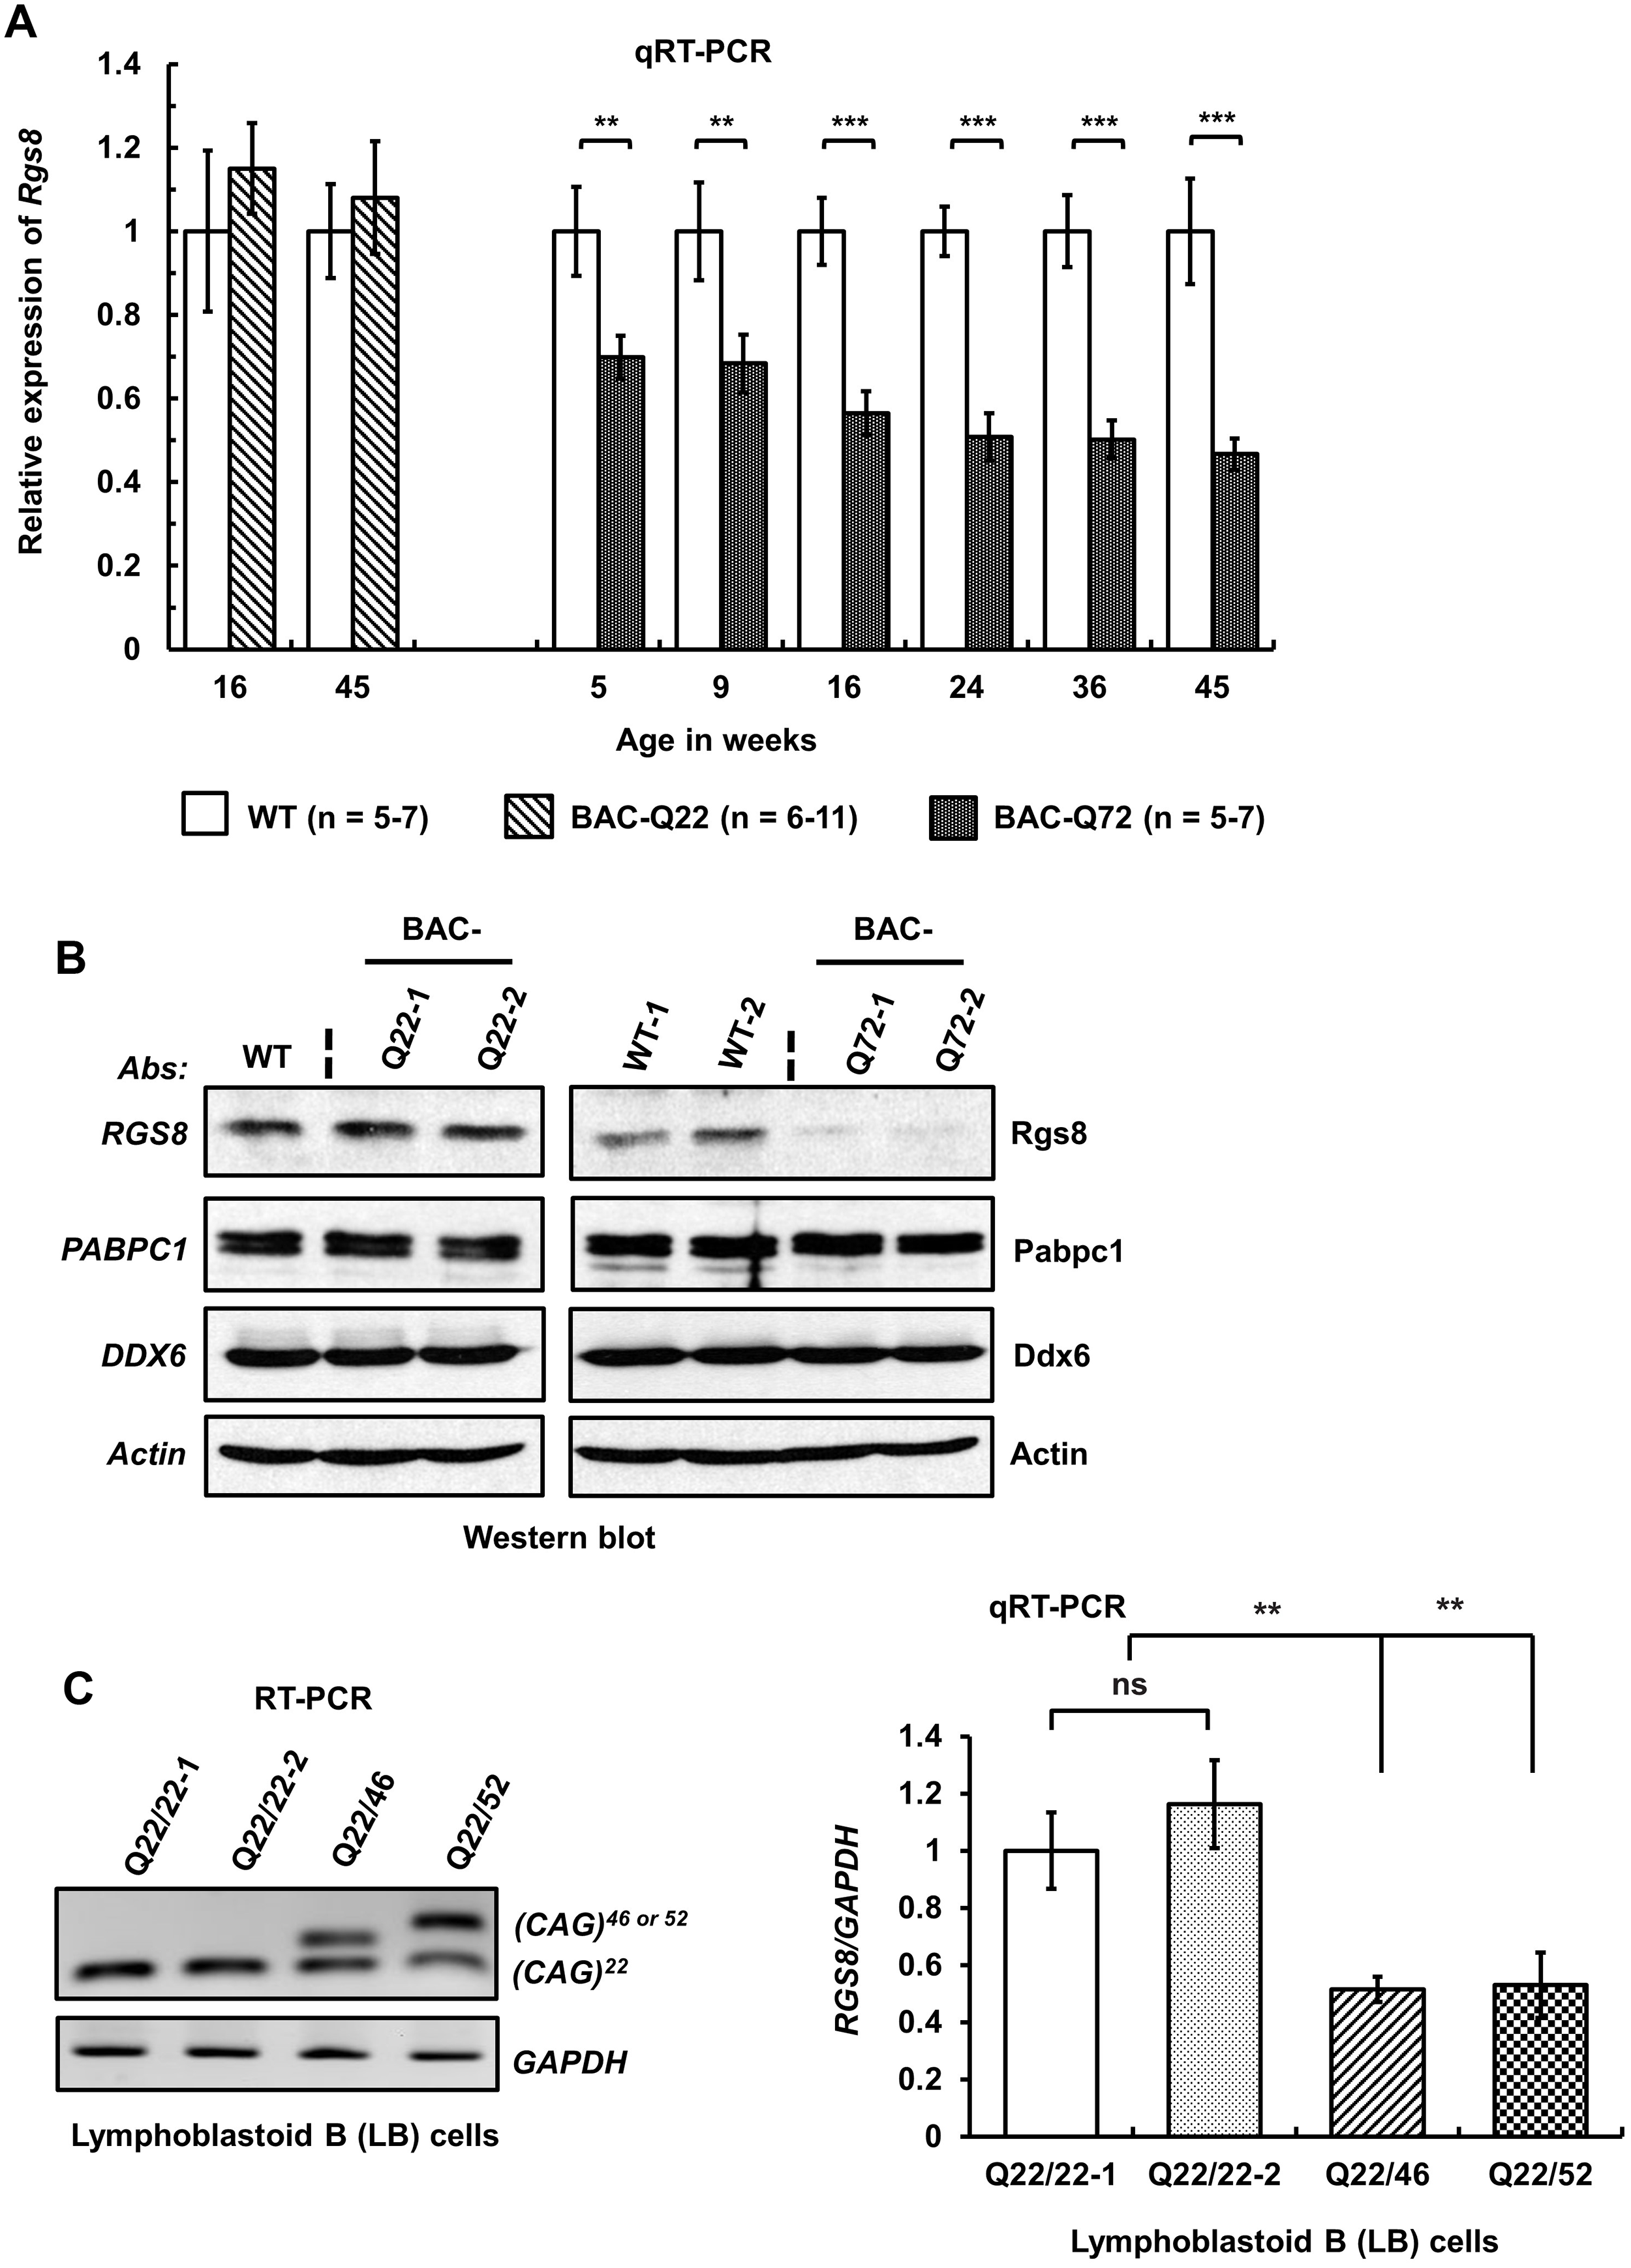 Decreased steady-state levels of <i>Rgs8</i> message and protein in BAC-Q72 mice.